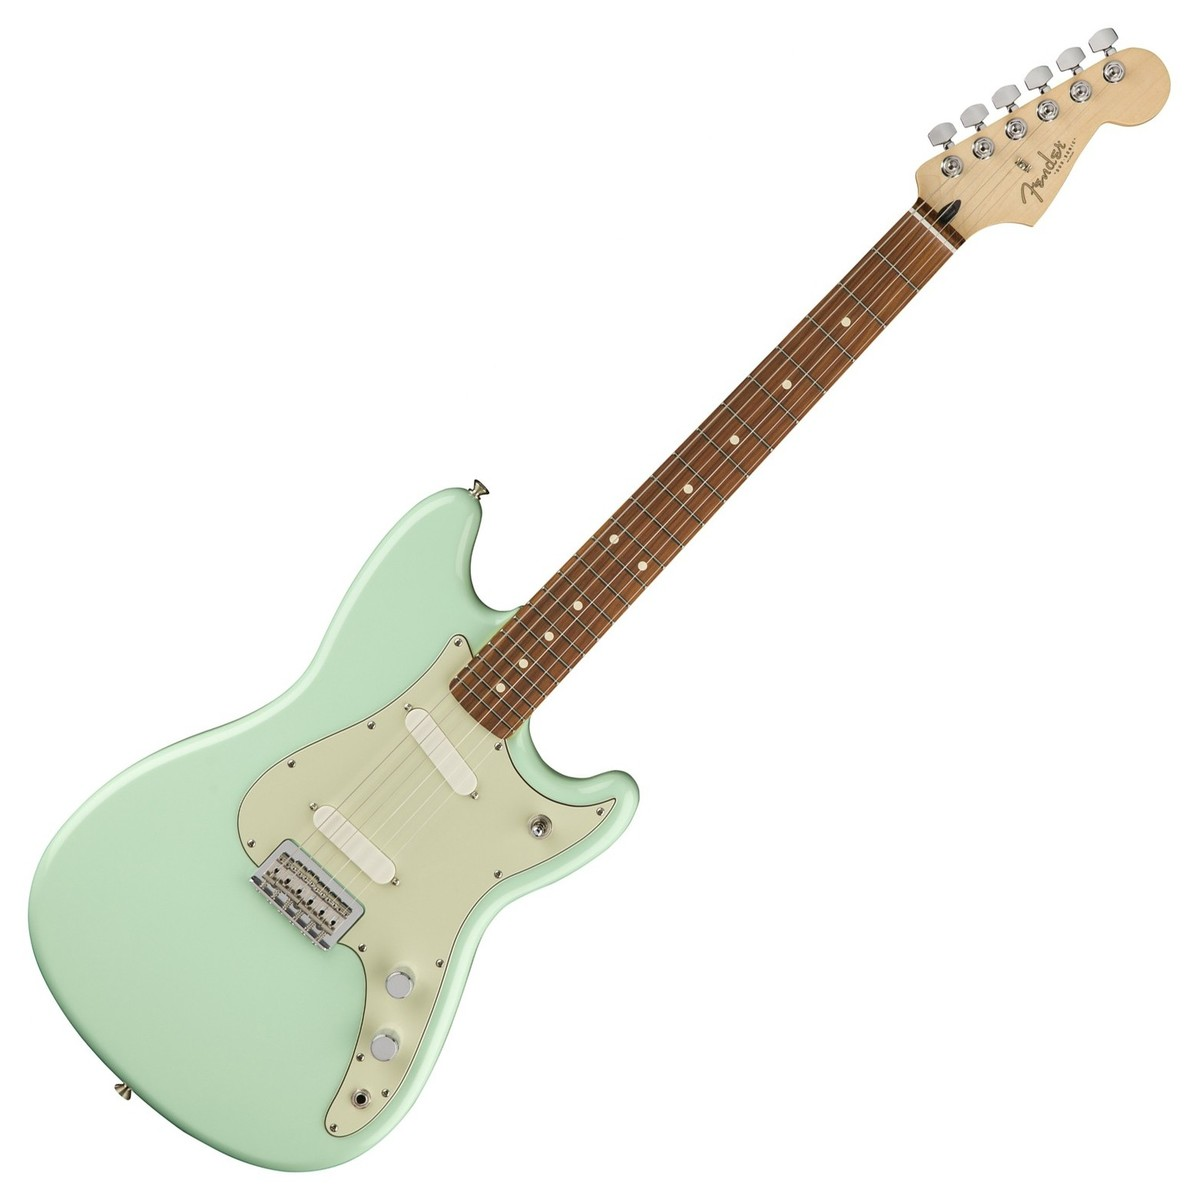 fender duo sonic electric guitar pau ferro surf green b stock at gear4music. Black Bedroom Furniture Sets. Home Design Ideas